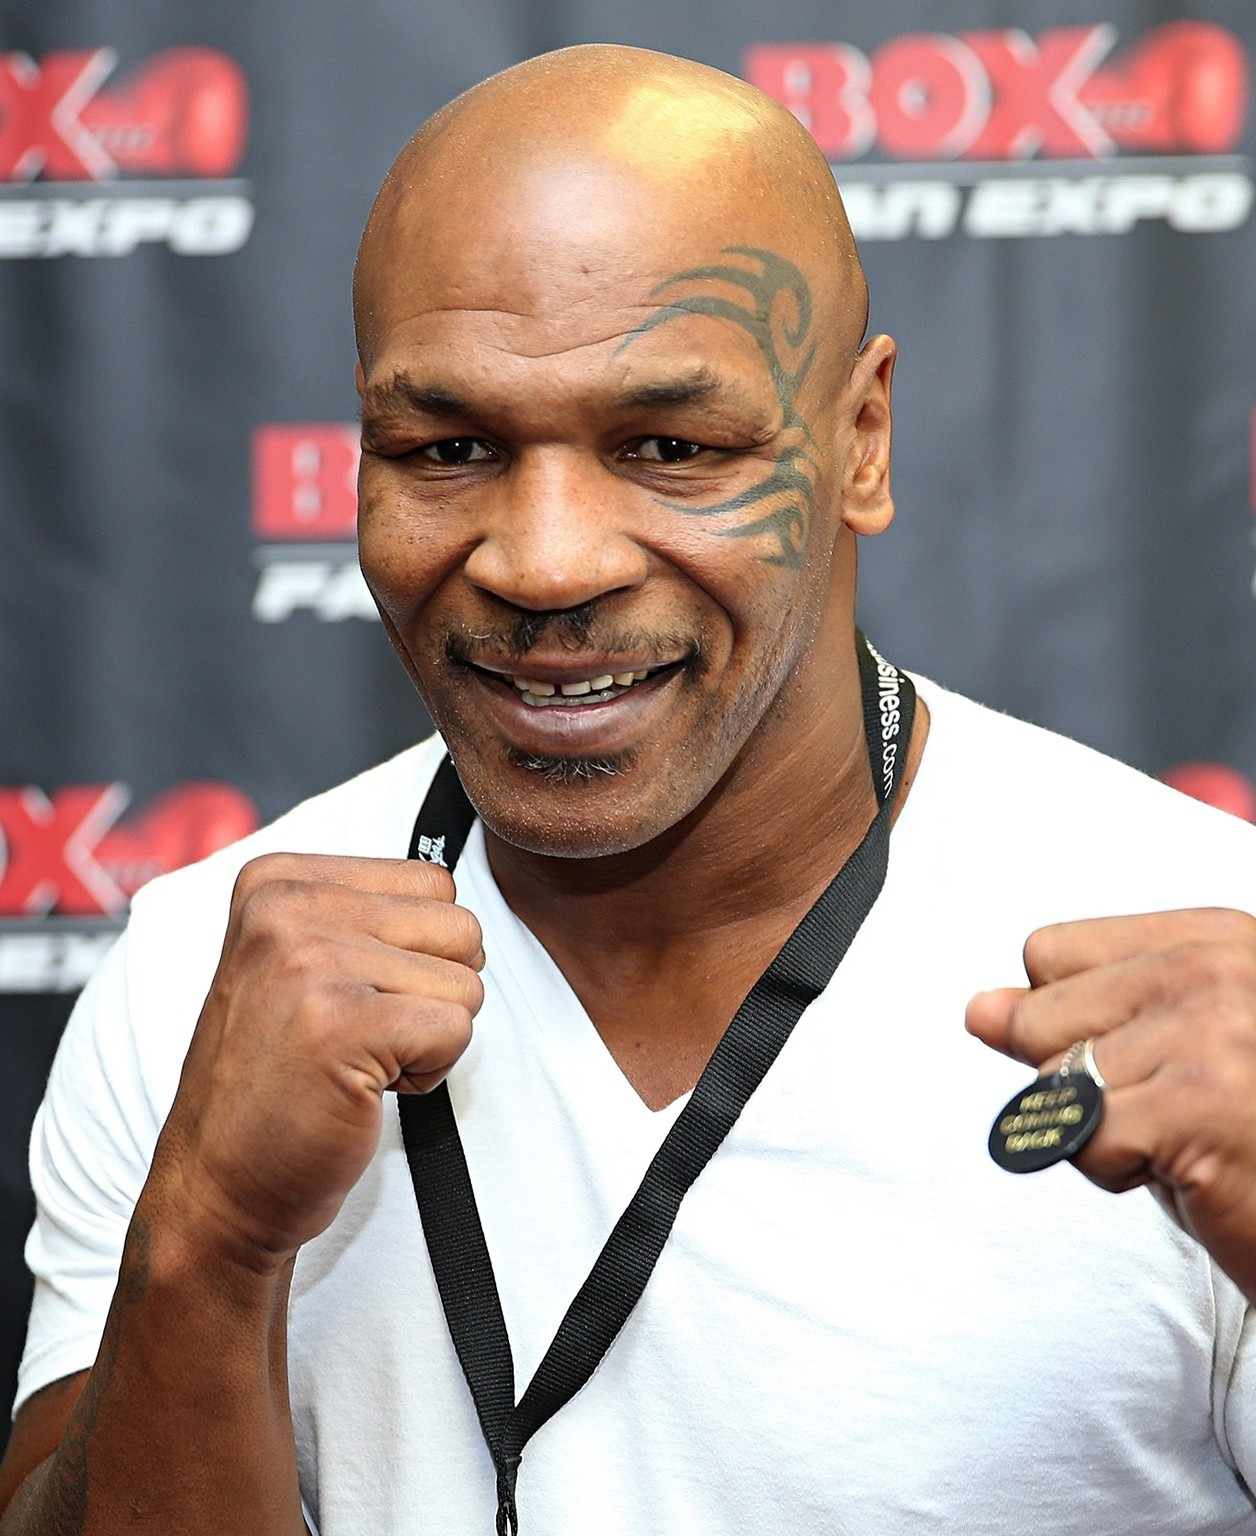 Mike Tyson Net Worth And Assets | Celebrity Net Worth